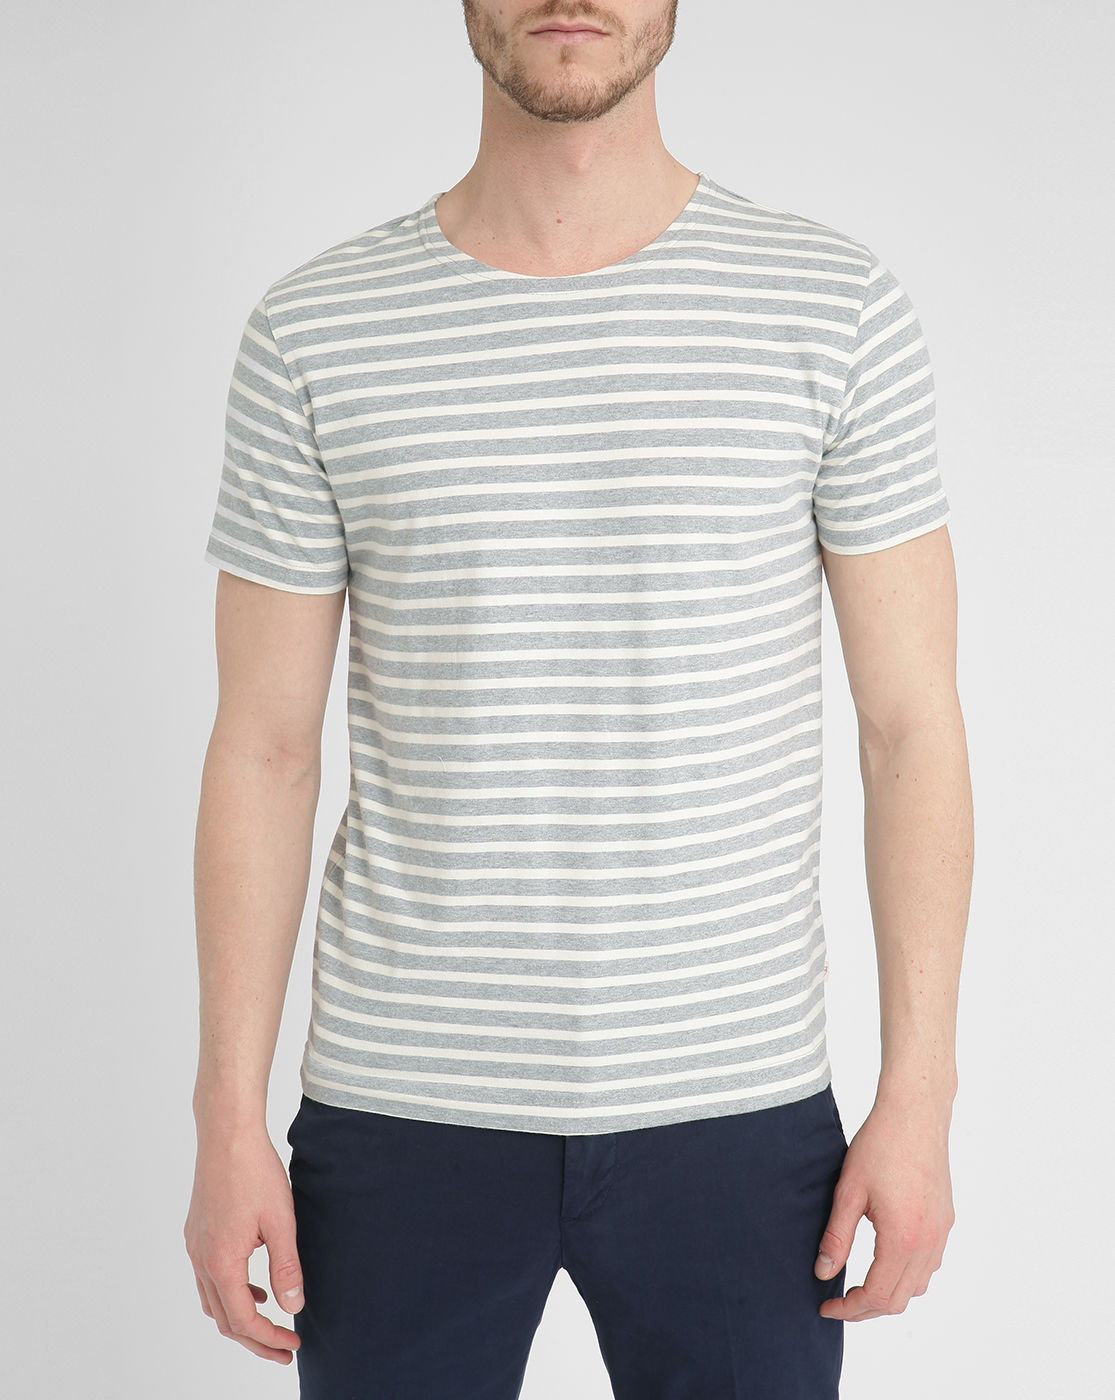 Knowledge cotton apparel grey and white stripe t shirt in Grey striped t shirt